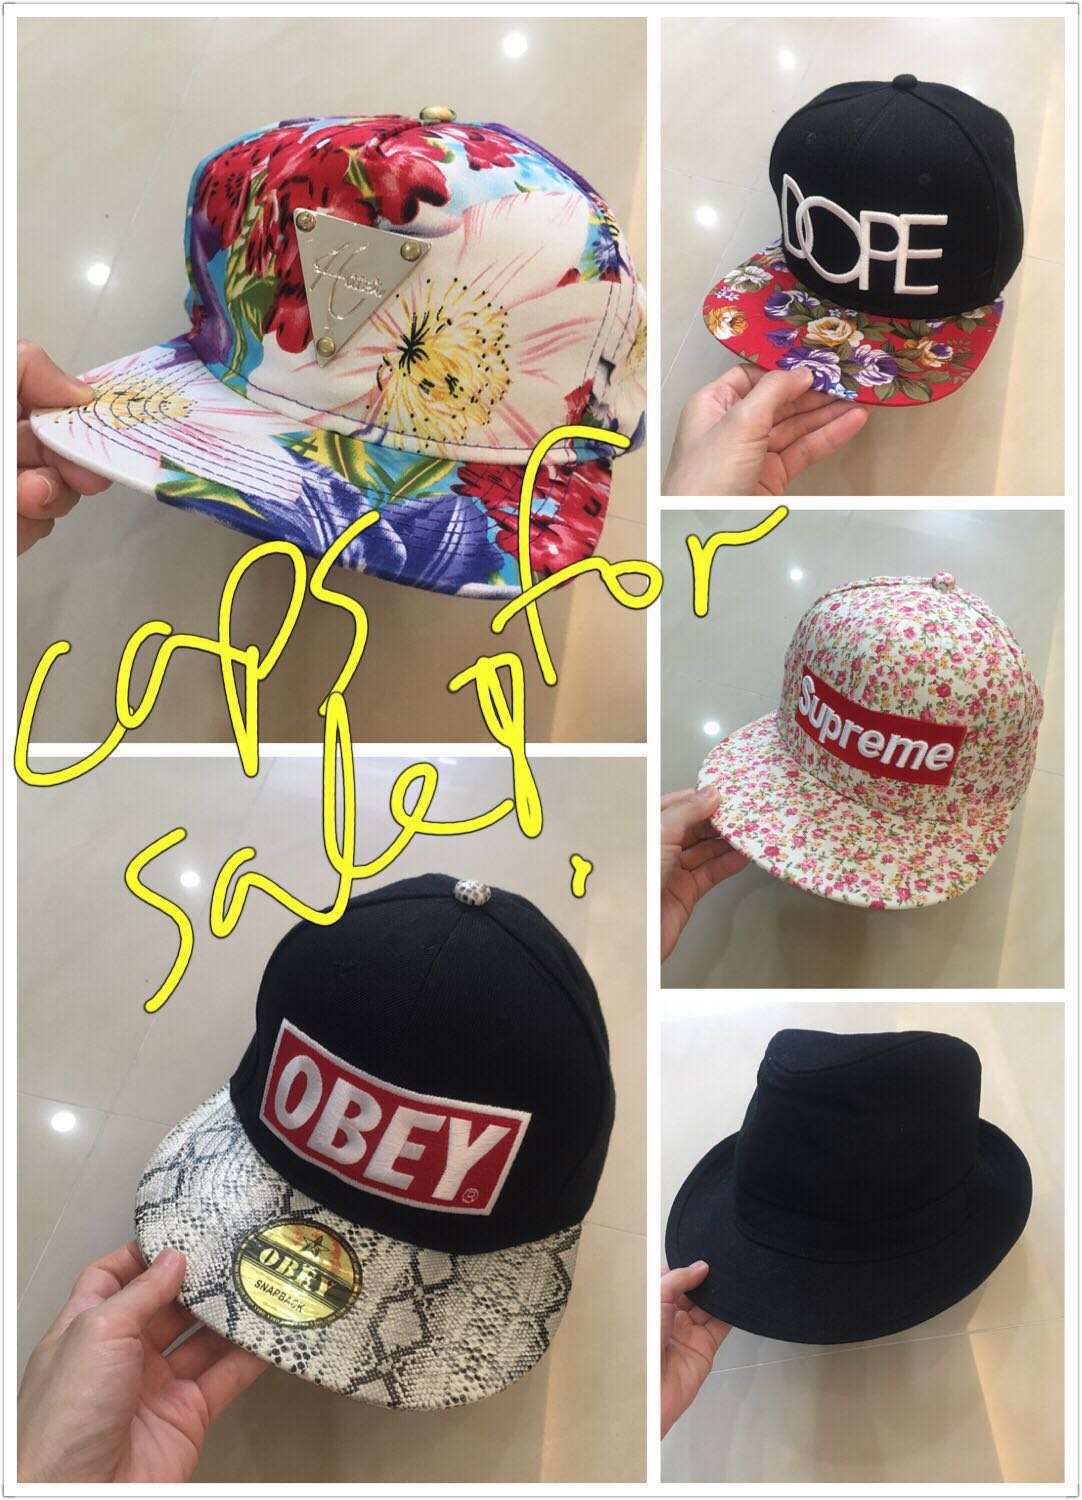 51fe06072 Brand new Assorted Supreme, Dope, Obey, Hater snapbacks and fedora hat for  sale